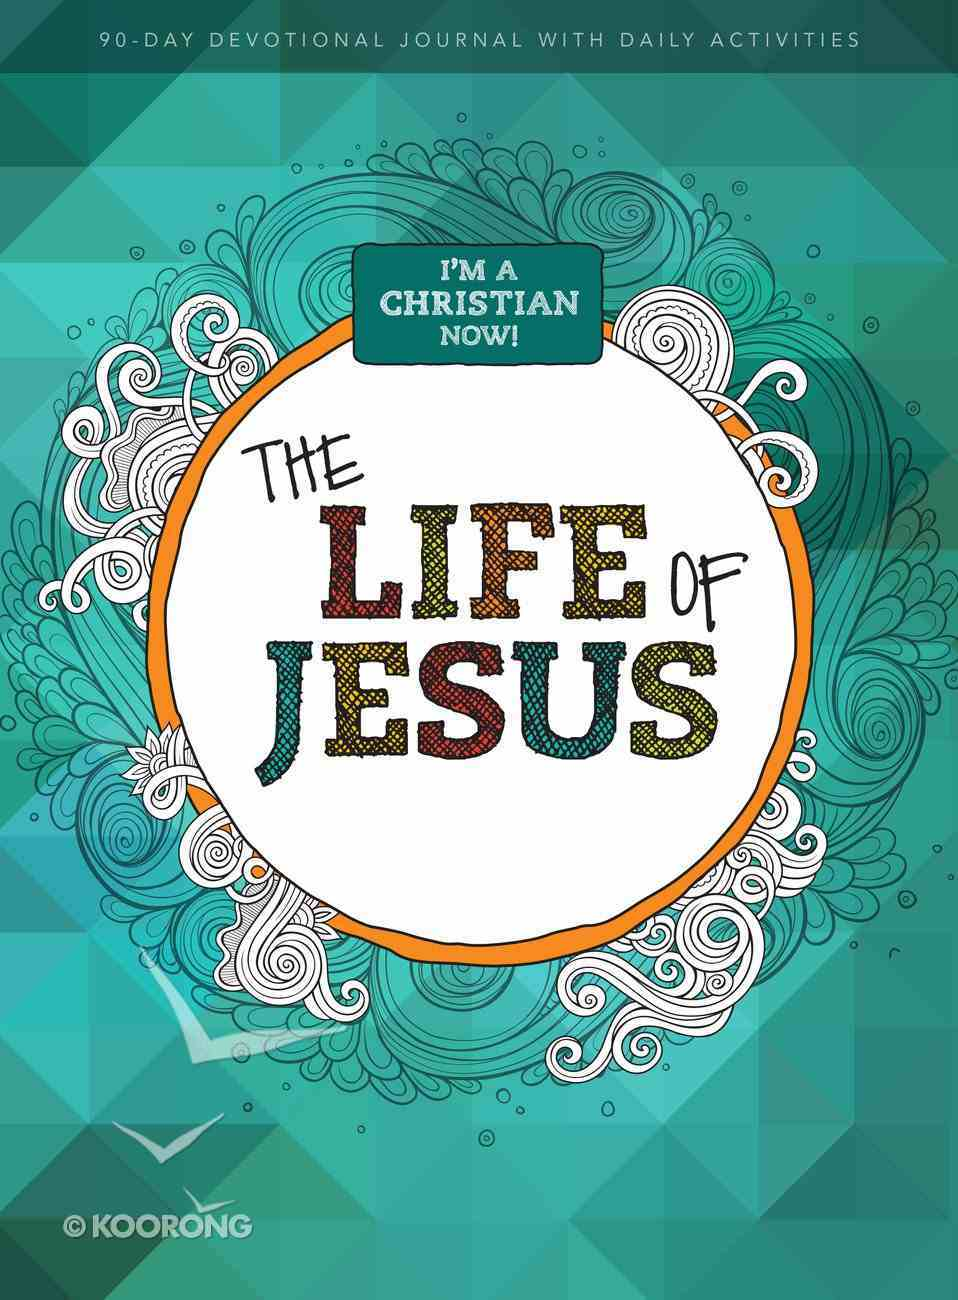 I'm a Christian Now: The Life of Jesus - 90 Day Devotional Journal For Kids With Daily Activities Paperback